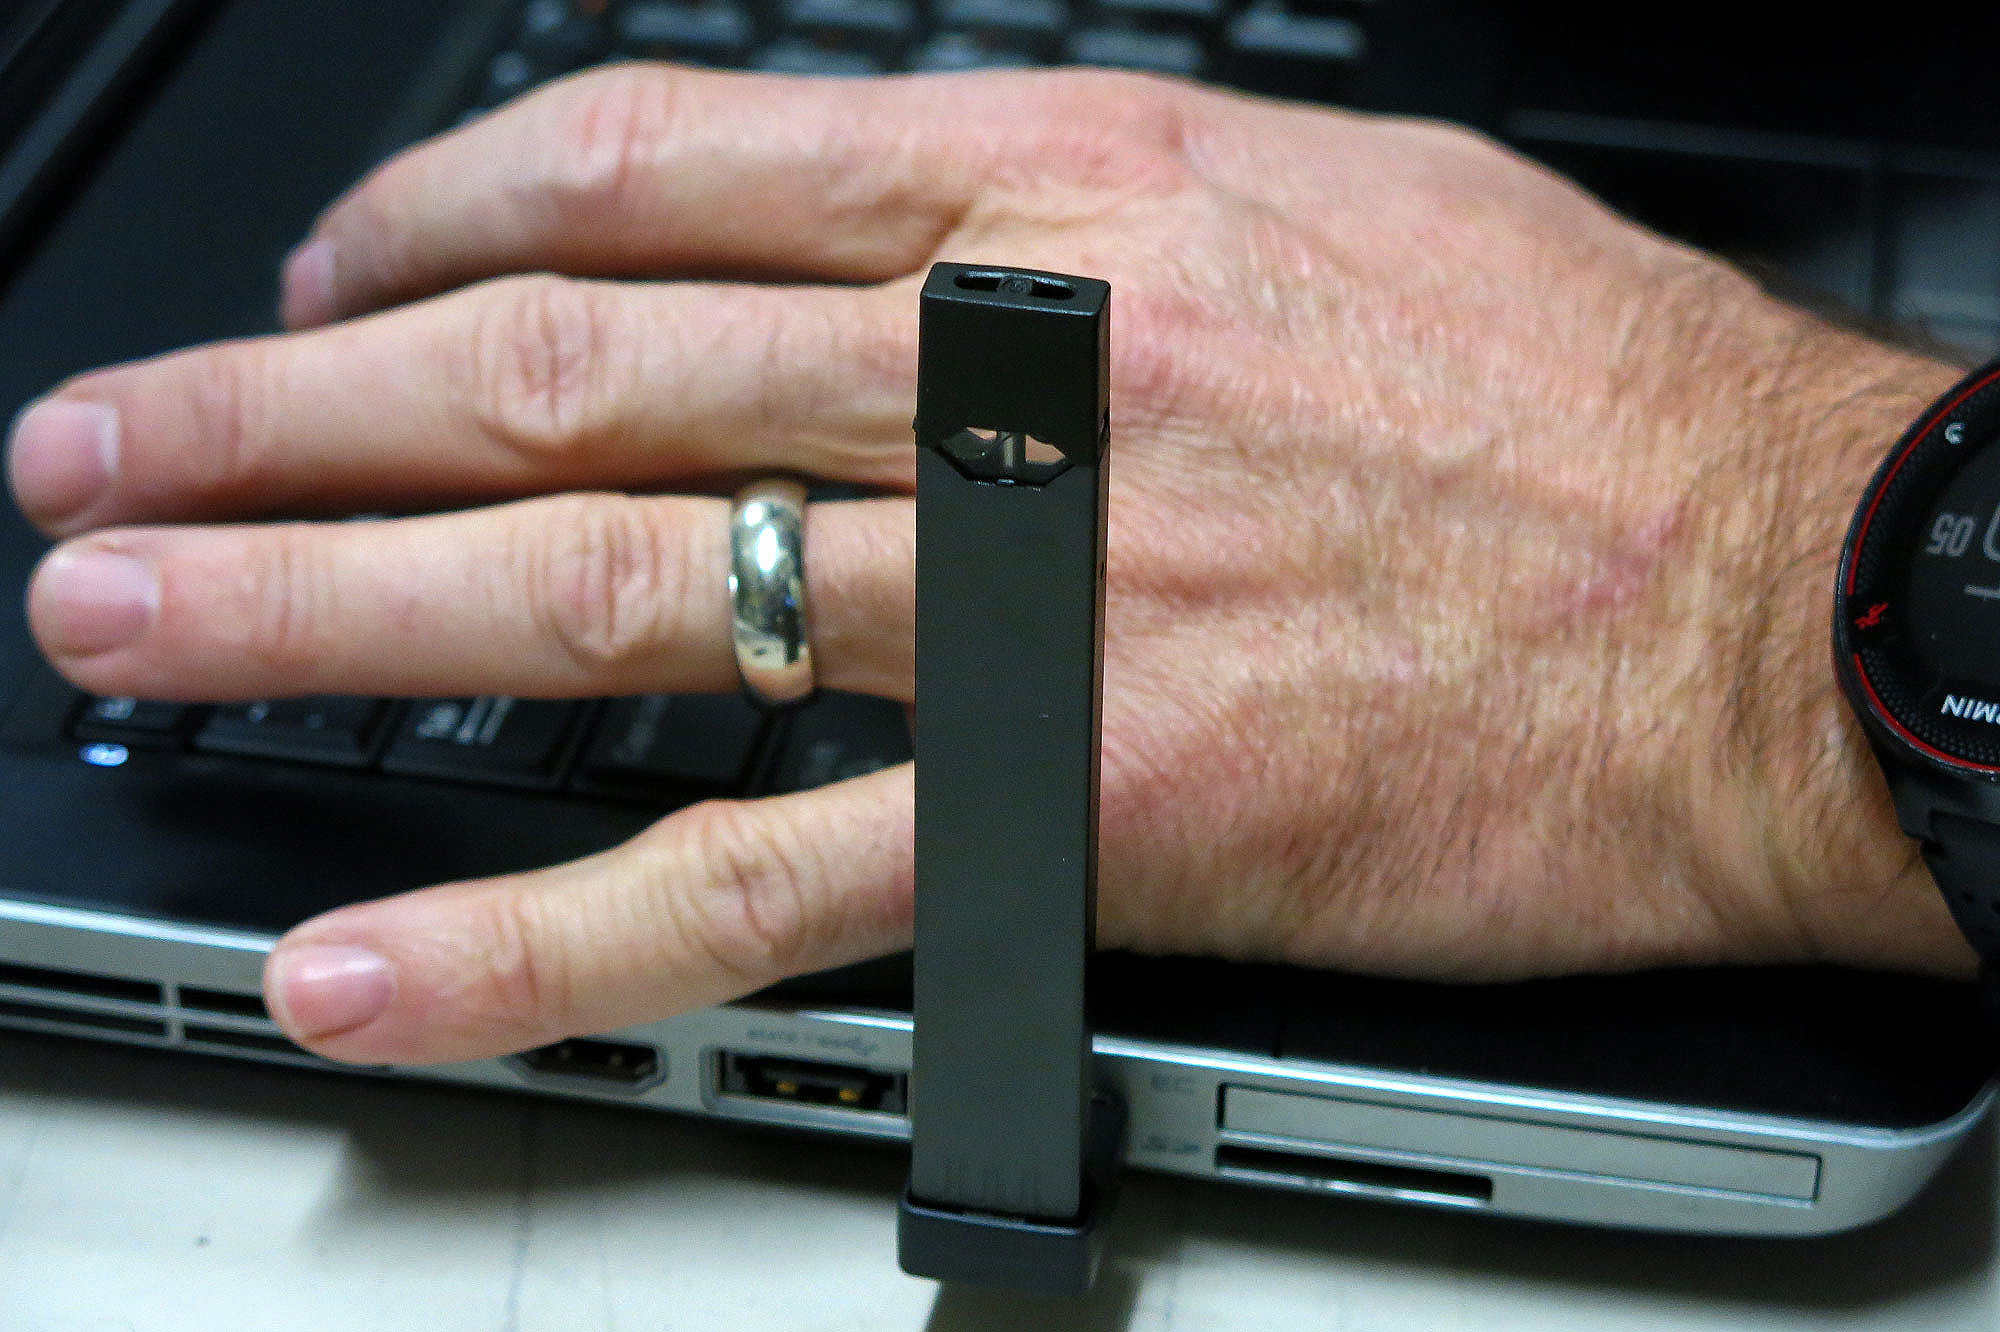 As E-Cigarettes Get More Sophisticated, Questions Mount